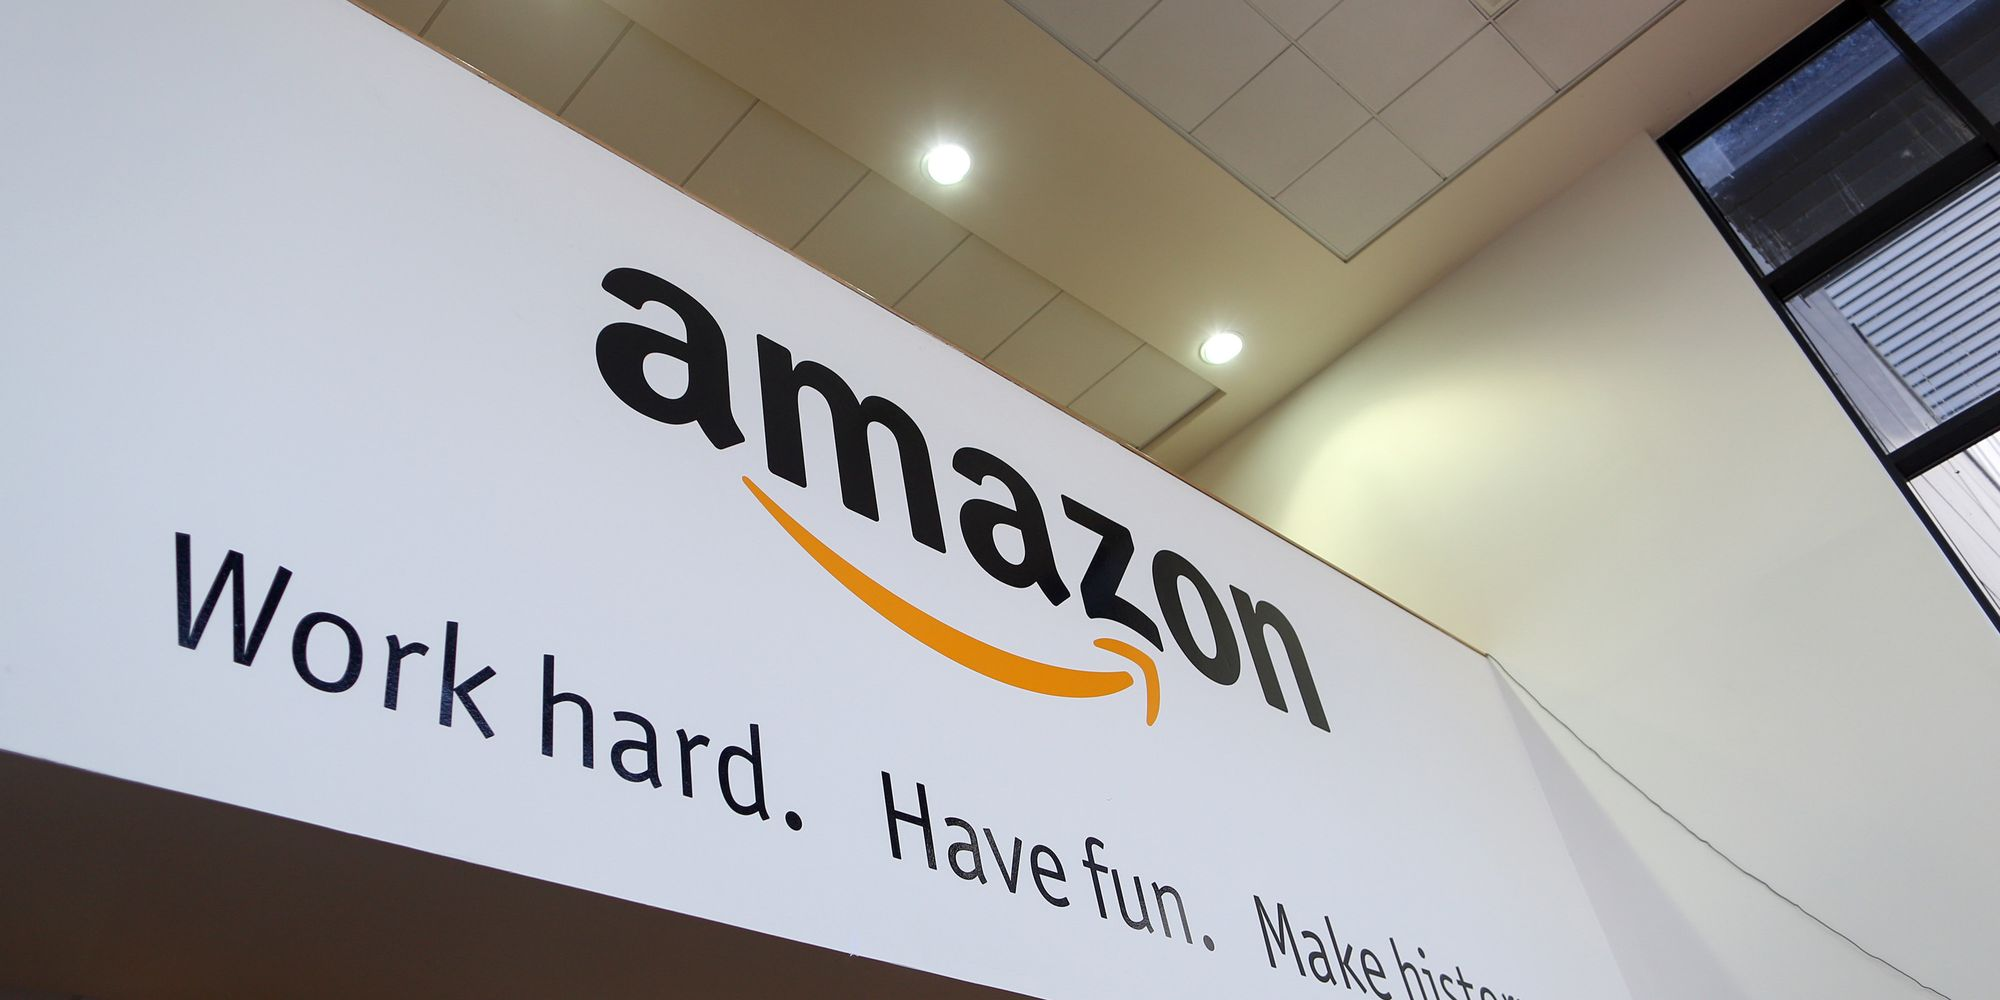 careers pictures videos breaking news amazon says it plans to add 100 000 jobs